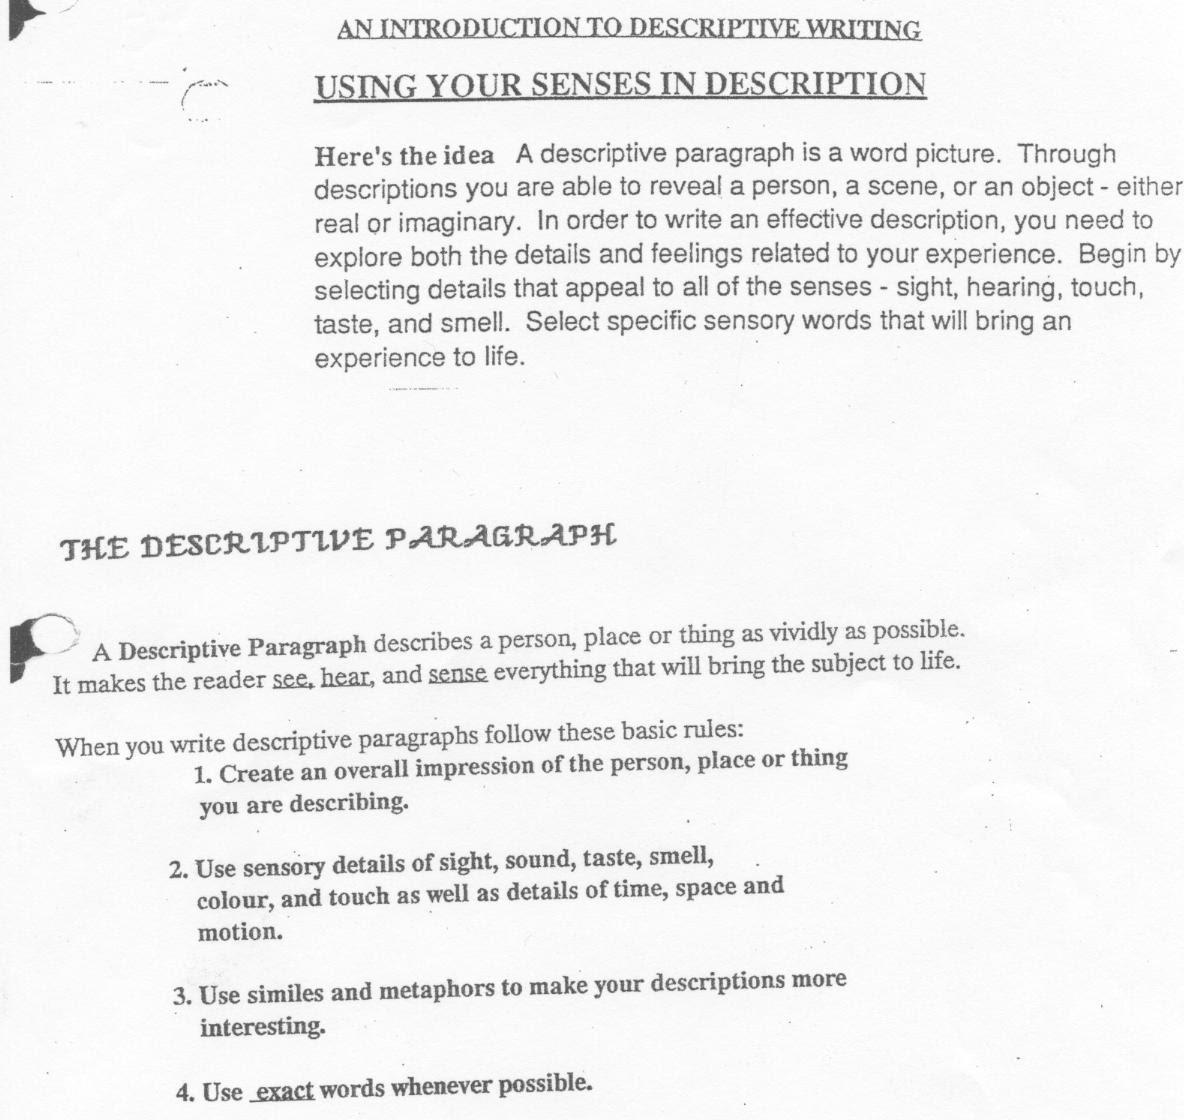 how to write an introductory paragraph for a descriptive essay